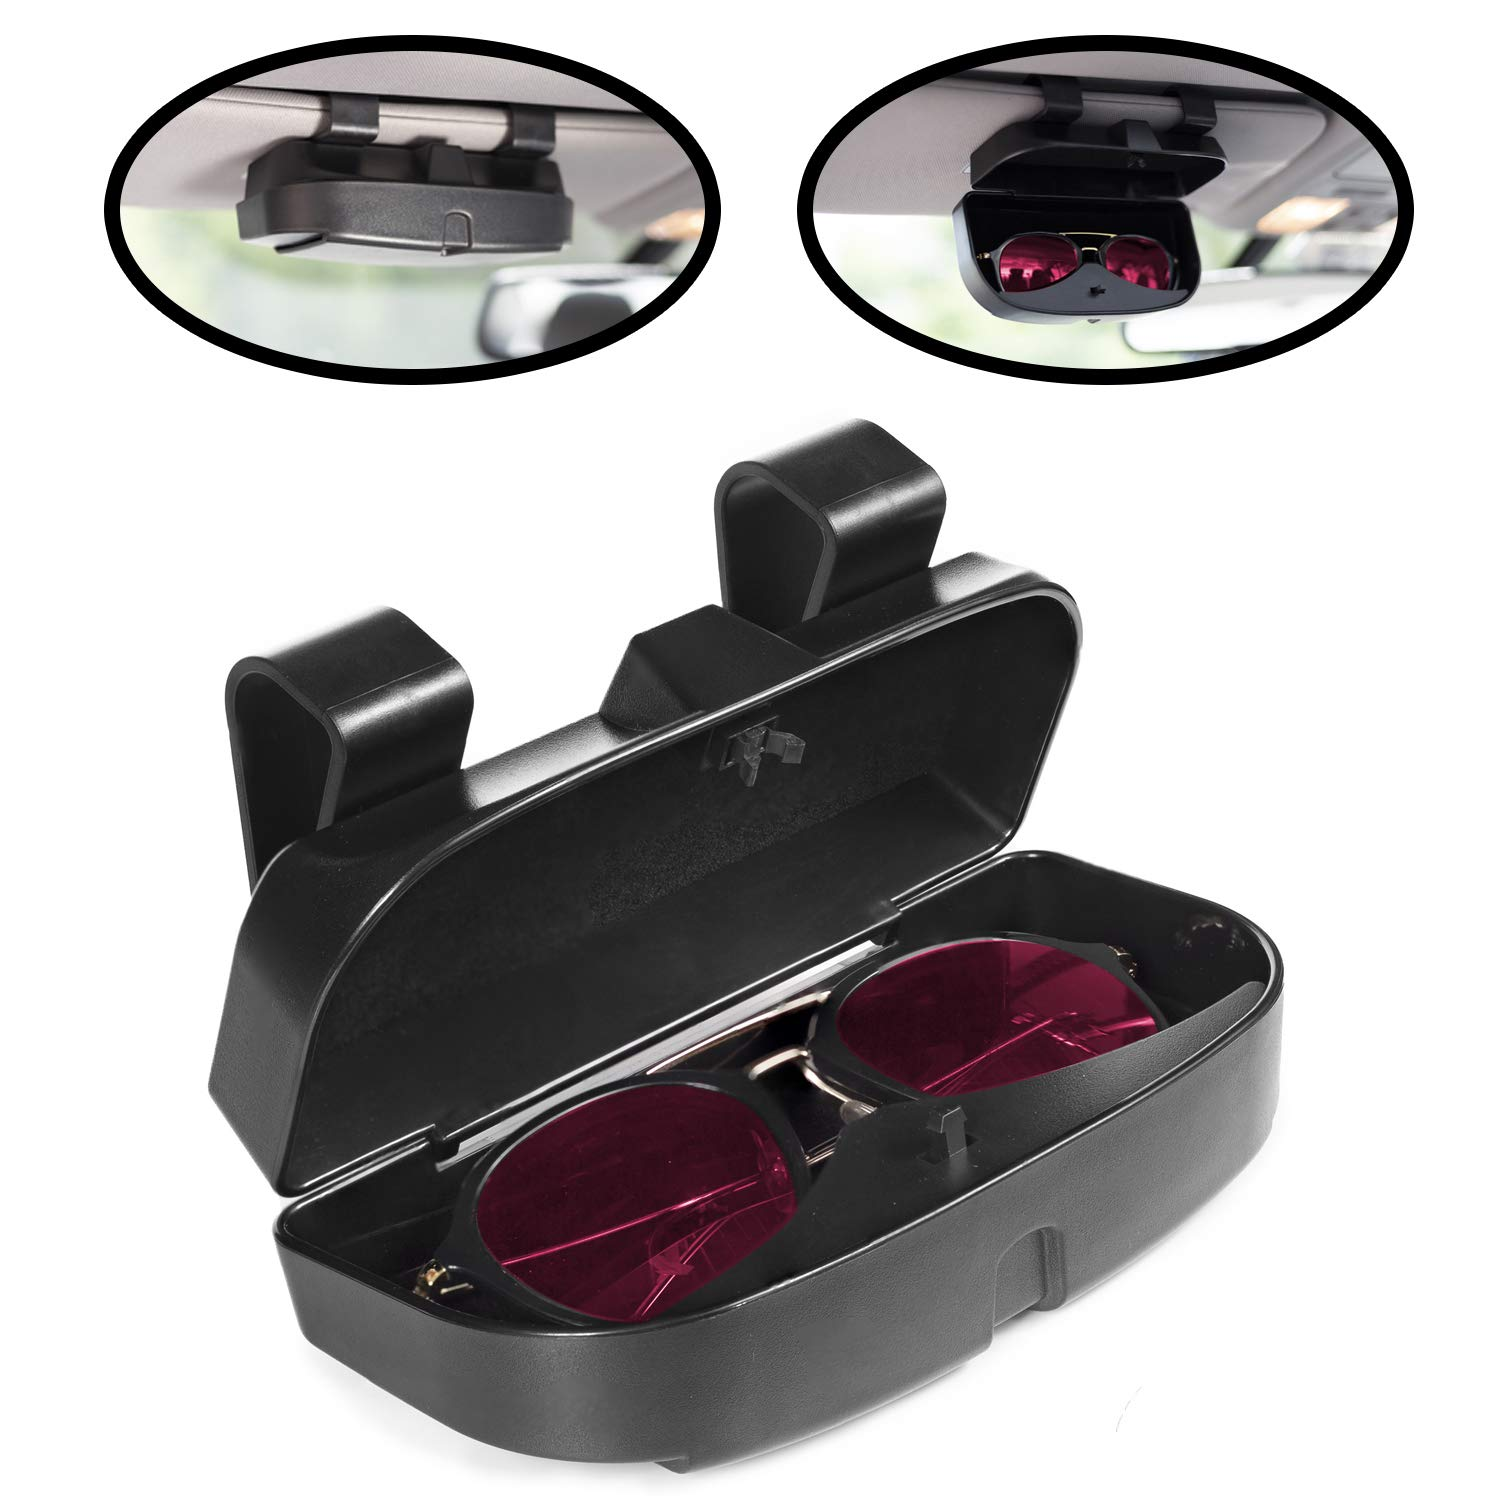 MOSISO Car Visor Sunglasses Case Pink Universal Automotive ABS Eyeglasses Holder Protective Box Clip Eyewear Hard Shell Storage Organizer with Magnetic Closure and Double Card Clamp